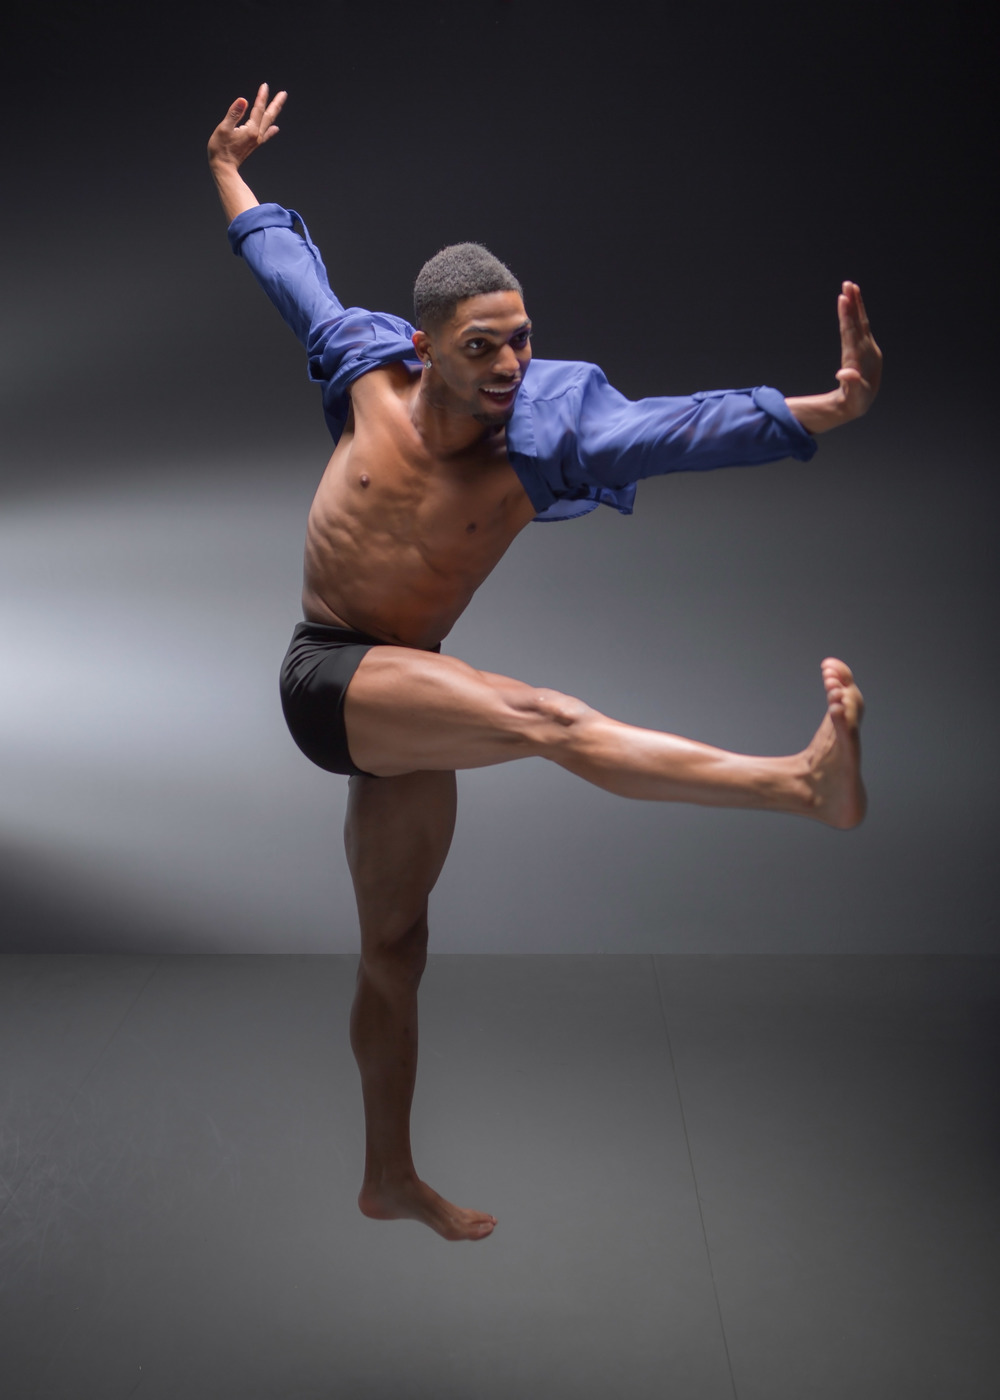 KERRY JACKSONis a native Houstonian started his professional training 6 years ago at the METdance Center with the MET too Youth Program. He has performed all around Houston and the United States and has received many astonishing awards such as a full scholarship to Point Park UniversitySummer Dance Program, Millennium Dancer Award from West Coast Dance Explosion, Jazz in AZ Dance Scholarship and Most Outstanding Choreography Award at the 2008 Black History Festival. Kerry has performed and worked with many great choreographers with METdance such as Larry Keigwin, Kiki Lucas, Marlana Doyle, Peter Chu, Sidra Bell, Kiesha Lalama, jhon r stronks Julie Fox, Jason McDole, Erin Reck, Jane Weiner, Robbie Moore, Ricky Ruiz, Steven Vaughn, Lauren Edson and Kate Skarpetowska. Kerry has been featured most recently in Kiki Lucas and Jess Hendricks on the company and has been photographed by Houston photographers Ben Doyle, Amitava Shankar and Jacob's Pillow Dance Festival in Dance Workshop series. He has performed at Houston Press's Artopia event, Bayou City Arts Festival, Grier School Gala, Texas A& M International University, Dance Gallery Dance Festival, Association of Performing Arts Presenters (APAP) Conference in New York, Boston Contemporary Dance Festival, Barefoot Brigade, Spring into Dance Festival in St. Louis, Jacob's Pillow Inside/Out Dance Series in 2012 and 2014 in Massachusetts, Dance Under the Stars Choreography Festival in Palm Desert, CA., Julydoscope with the Cinema Arts Festival, Dallas Dance Festival and Austin Dance Festival.Kerry teaches, choreographs and volunteers throughout Houston and this will be his sixth year as Poe elementary fine arts career day speaker. Kerry was on the magazine cover on the Aug-Sept issue of the Dallas Dance Fest Festival 2015. This is his sixth season with the METdance and is proud to be a company member.